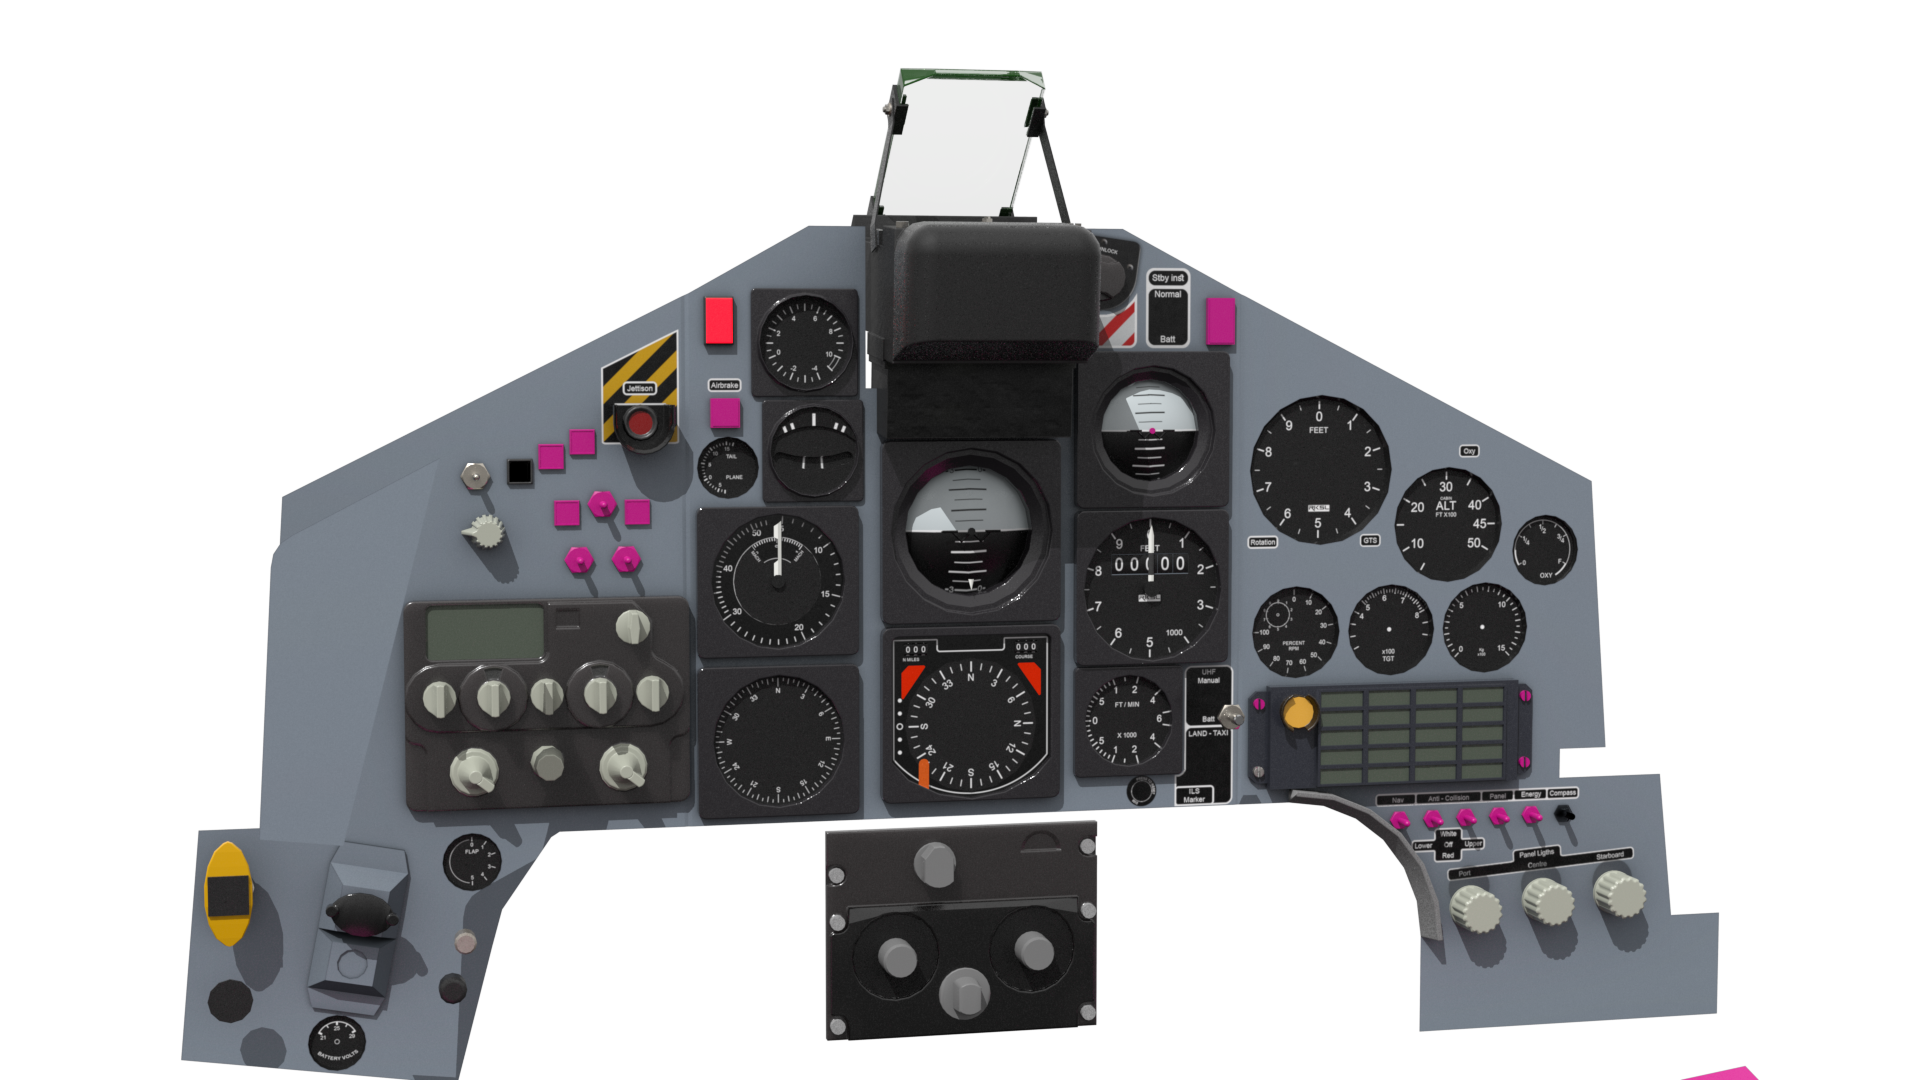 Hawk cockpit panels 3.png